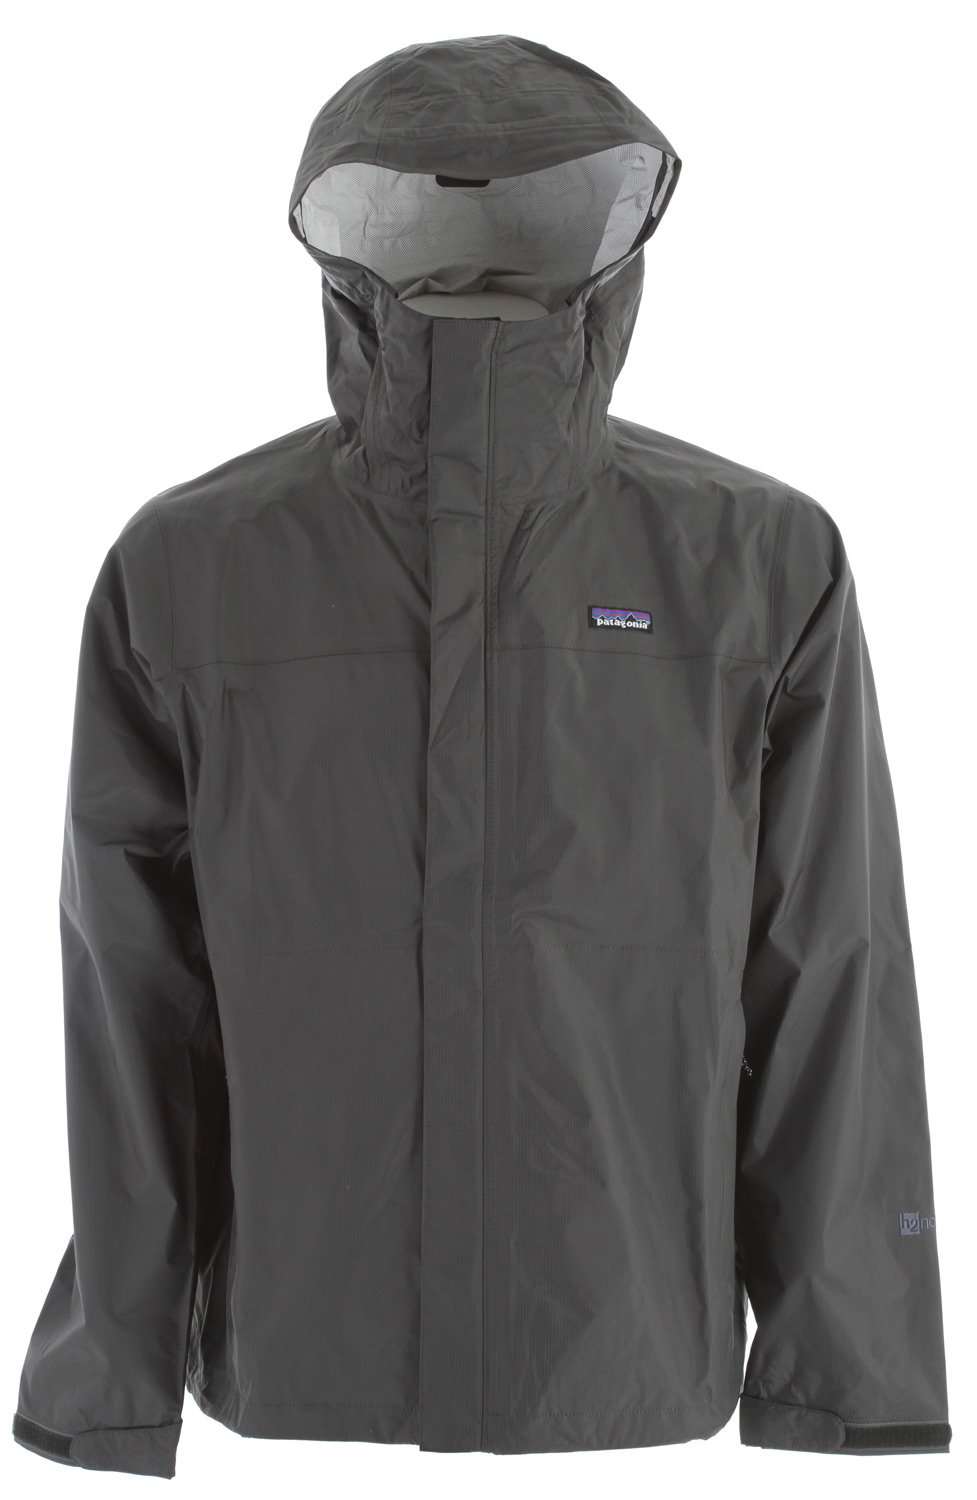 Pared-down and packable, the Torrentshell is a no-frills, 2.5-layer hard shell with a waterproof/breathable H2No barrier for seriously wet weather. fabric: 2.5-layer, 2.6-oz 50-denier 100% nylon ripstop with a waterproof/breathable H2No barrier and a Deluge DWR (durable water repellent) finishKey Features of the Patagonia Torrentshell Jacket: 2.5-layer nylon ripstop shell with a waterproof/breathable H2No barrier and Deluge DWR finish 2-way-adjustable hood with a laminated visor rolls down and stows Microfleece-lined neck provides comfort and protects waterproof/breathable barrier Center-front zipper has exterior and interior storm flaps to keep water out; pit zips have storm flaps and Deluge DWR-treated zippers Self-fabric hook-and-loop cuff closures Pockets: Two handwarmers; one internal mesh drop-in Drawcord hem; packs into zippered self-storage pocket - $89.95